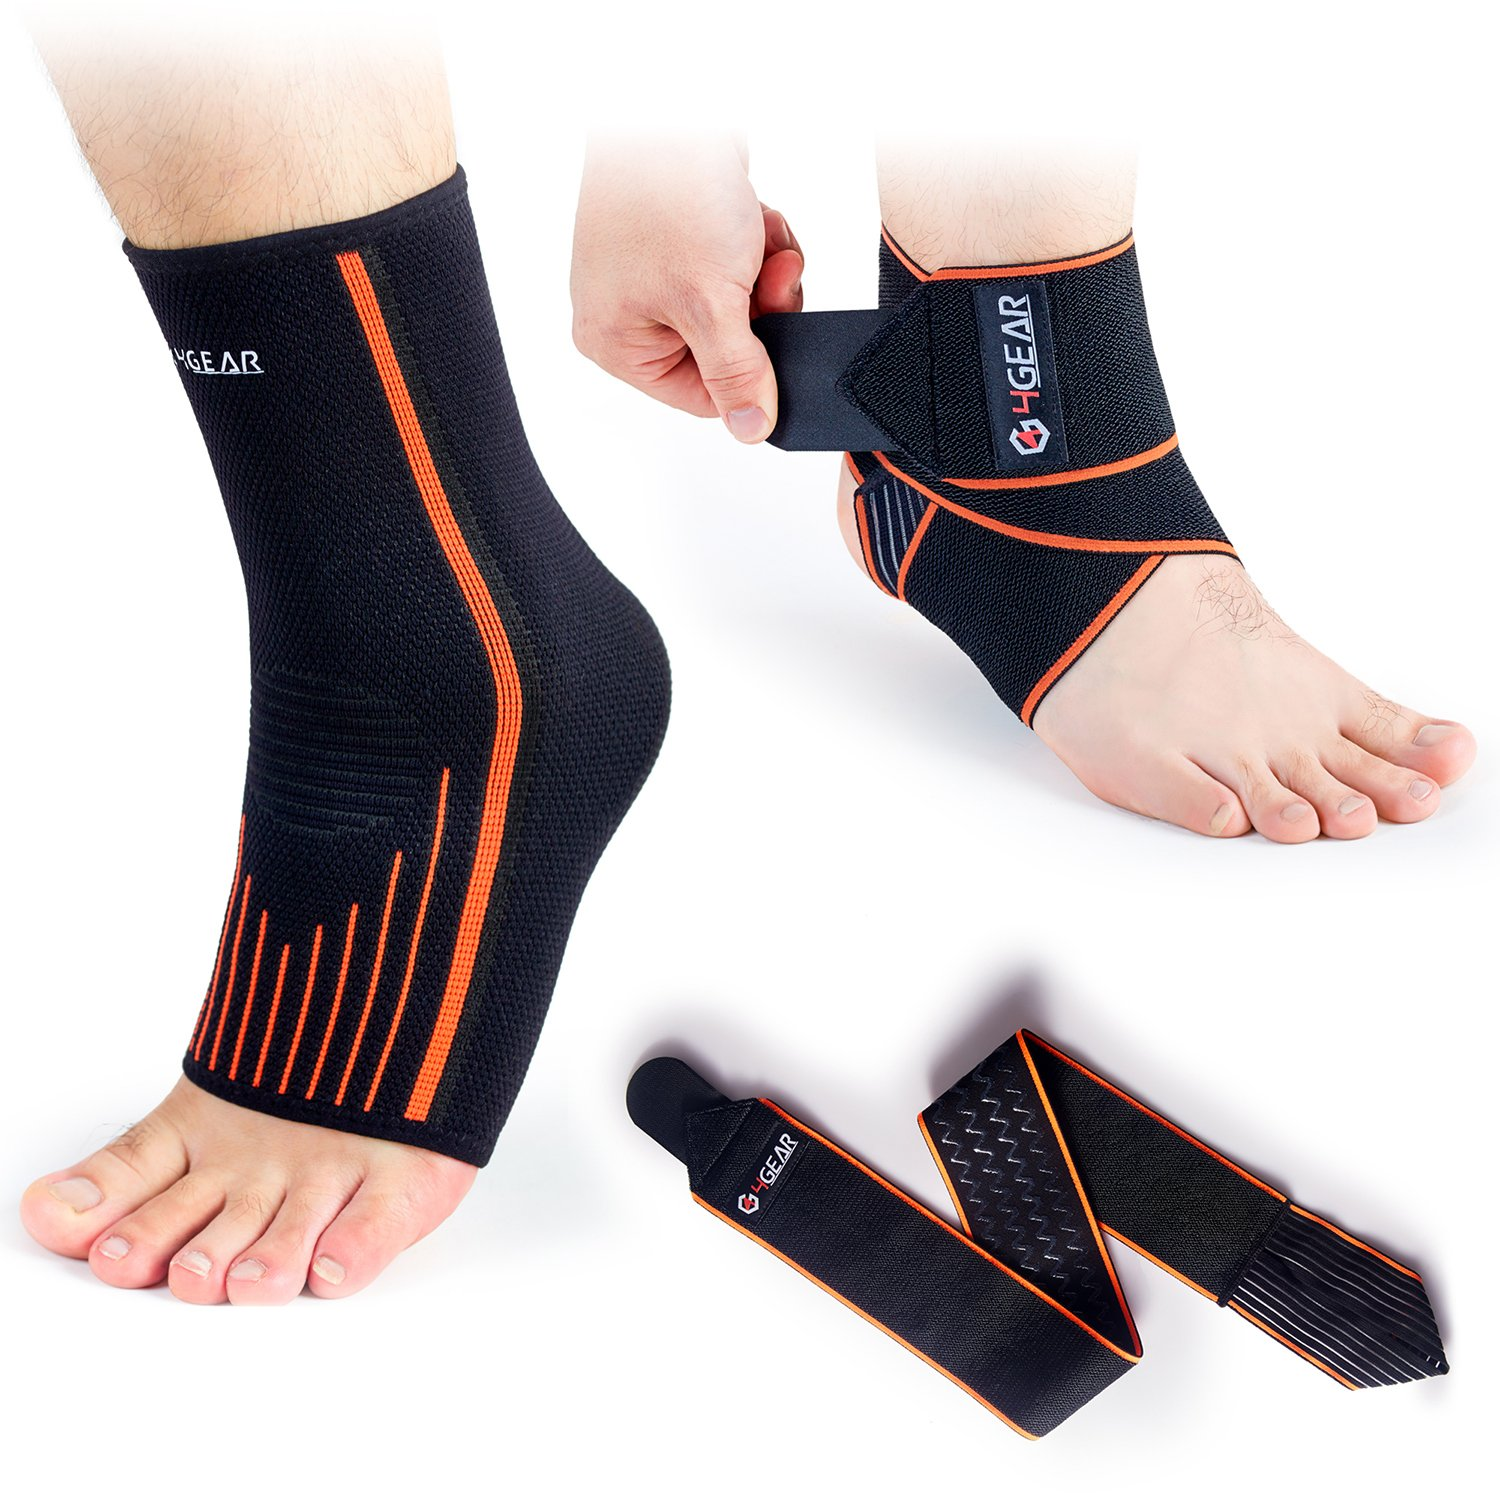 4GEAR Ankle Support Kit - 2 Pack - Ankle Brace Strap & Ankle Compression Sleeve with Arch Supports - Best for Sports Protection, Injury Recovery, Reduce Swelling, Ankle Strain (Medium)